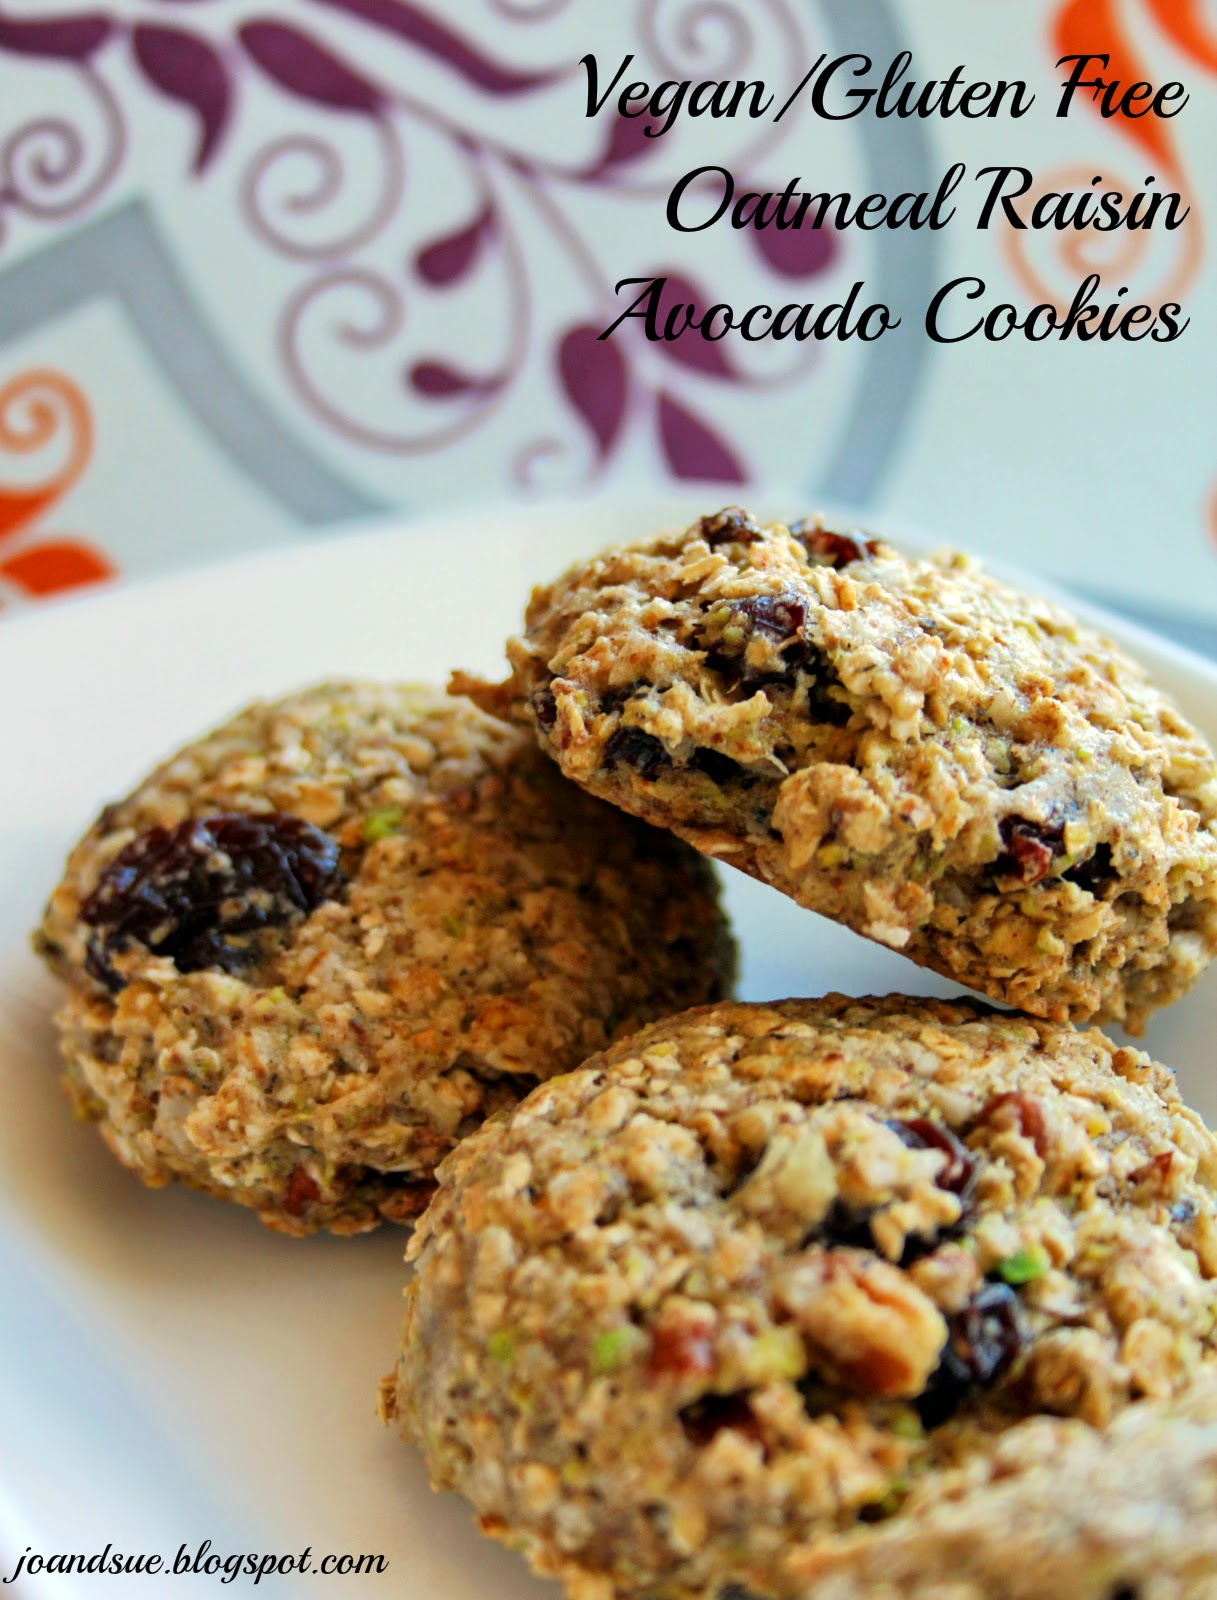 call these Oatmeal Raisin Cookies. I would keep the vegan/gluten free ...